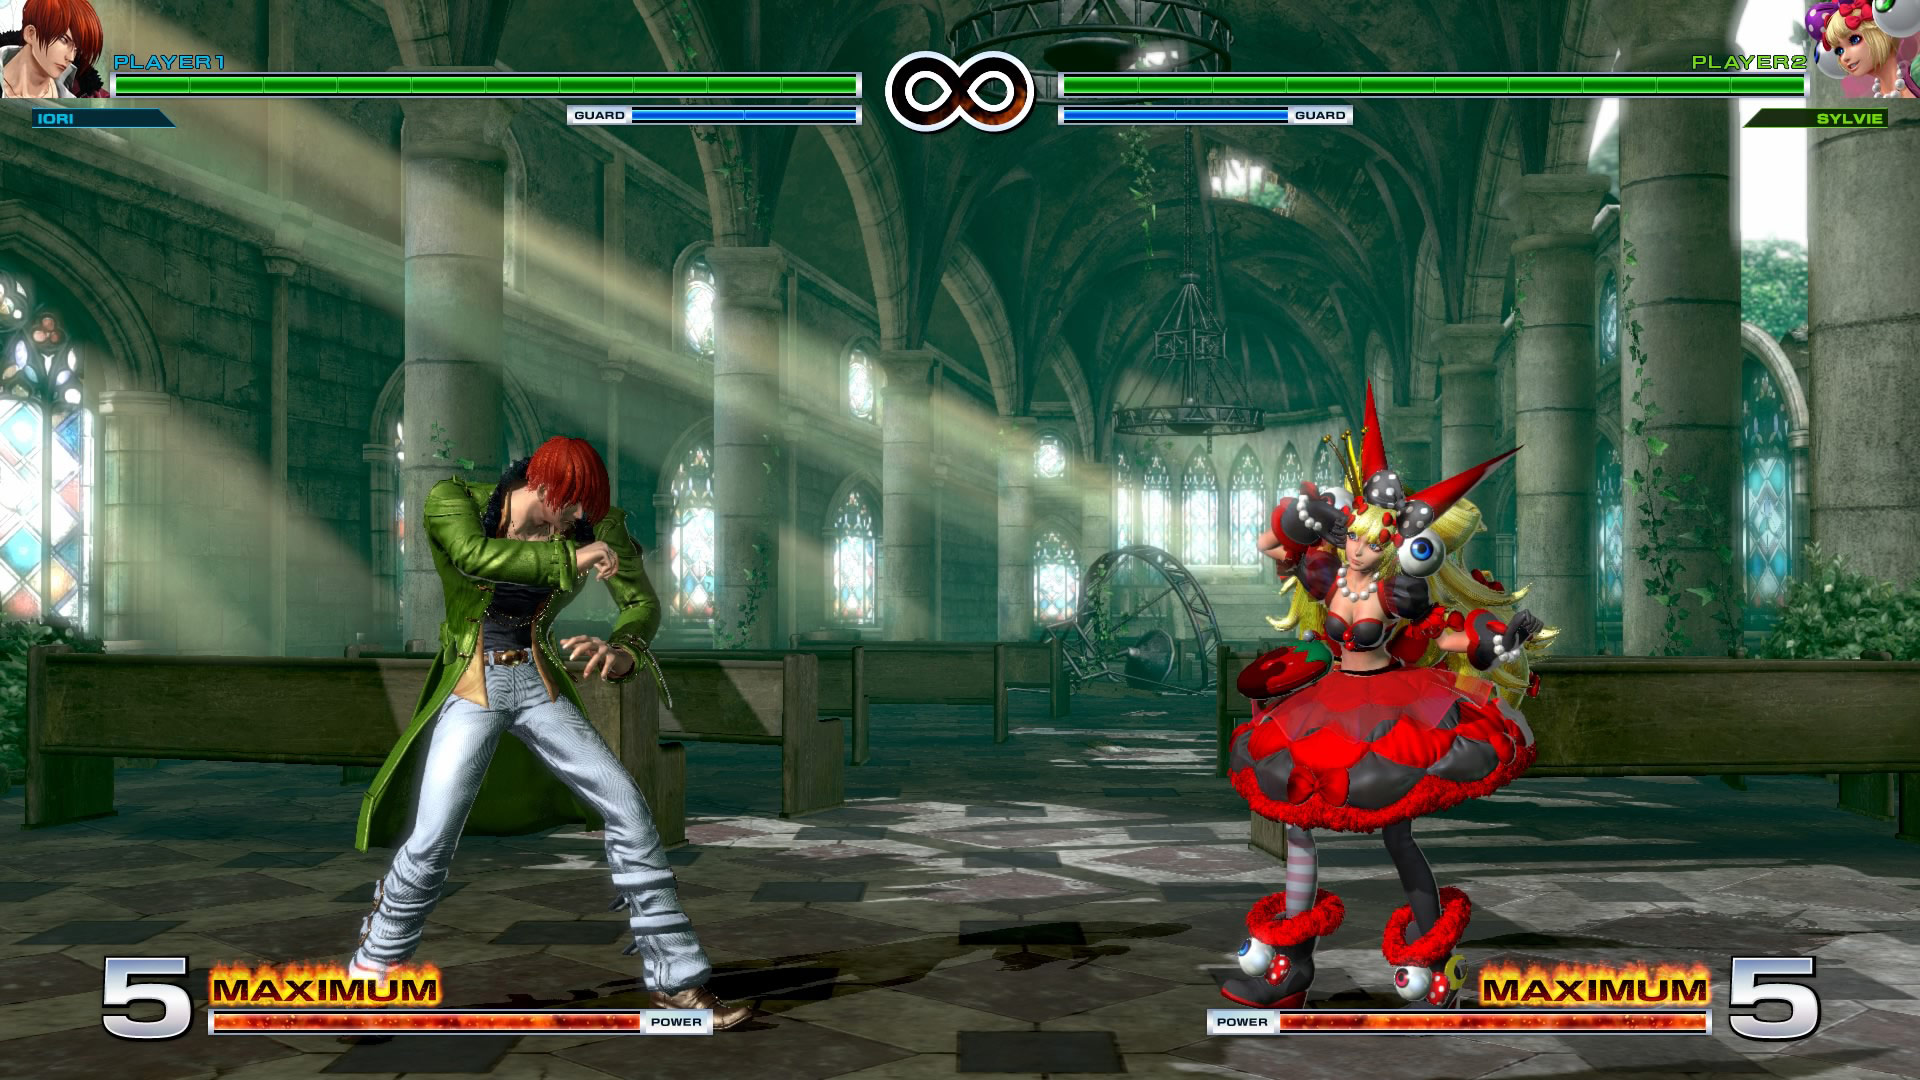 King of Fighters 14 1.10 graphics update 40 out of 60 image gallery